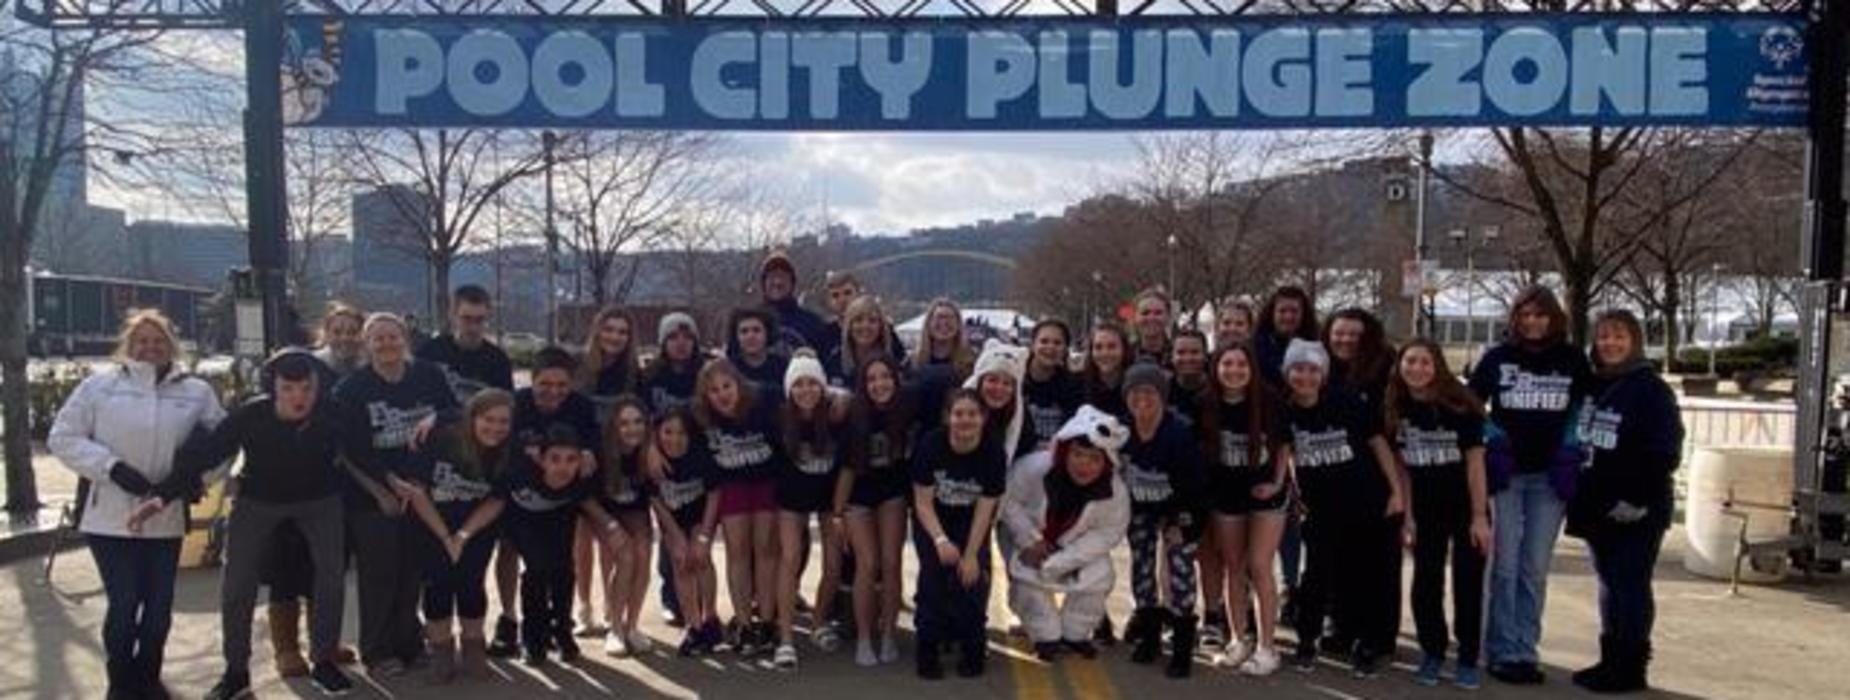 Franklin Regional's Polar Plunge Team - 2nd Place